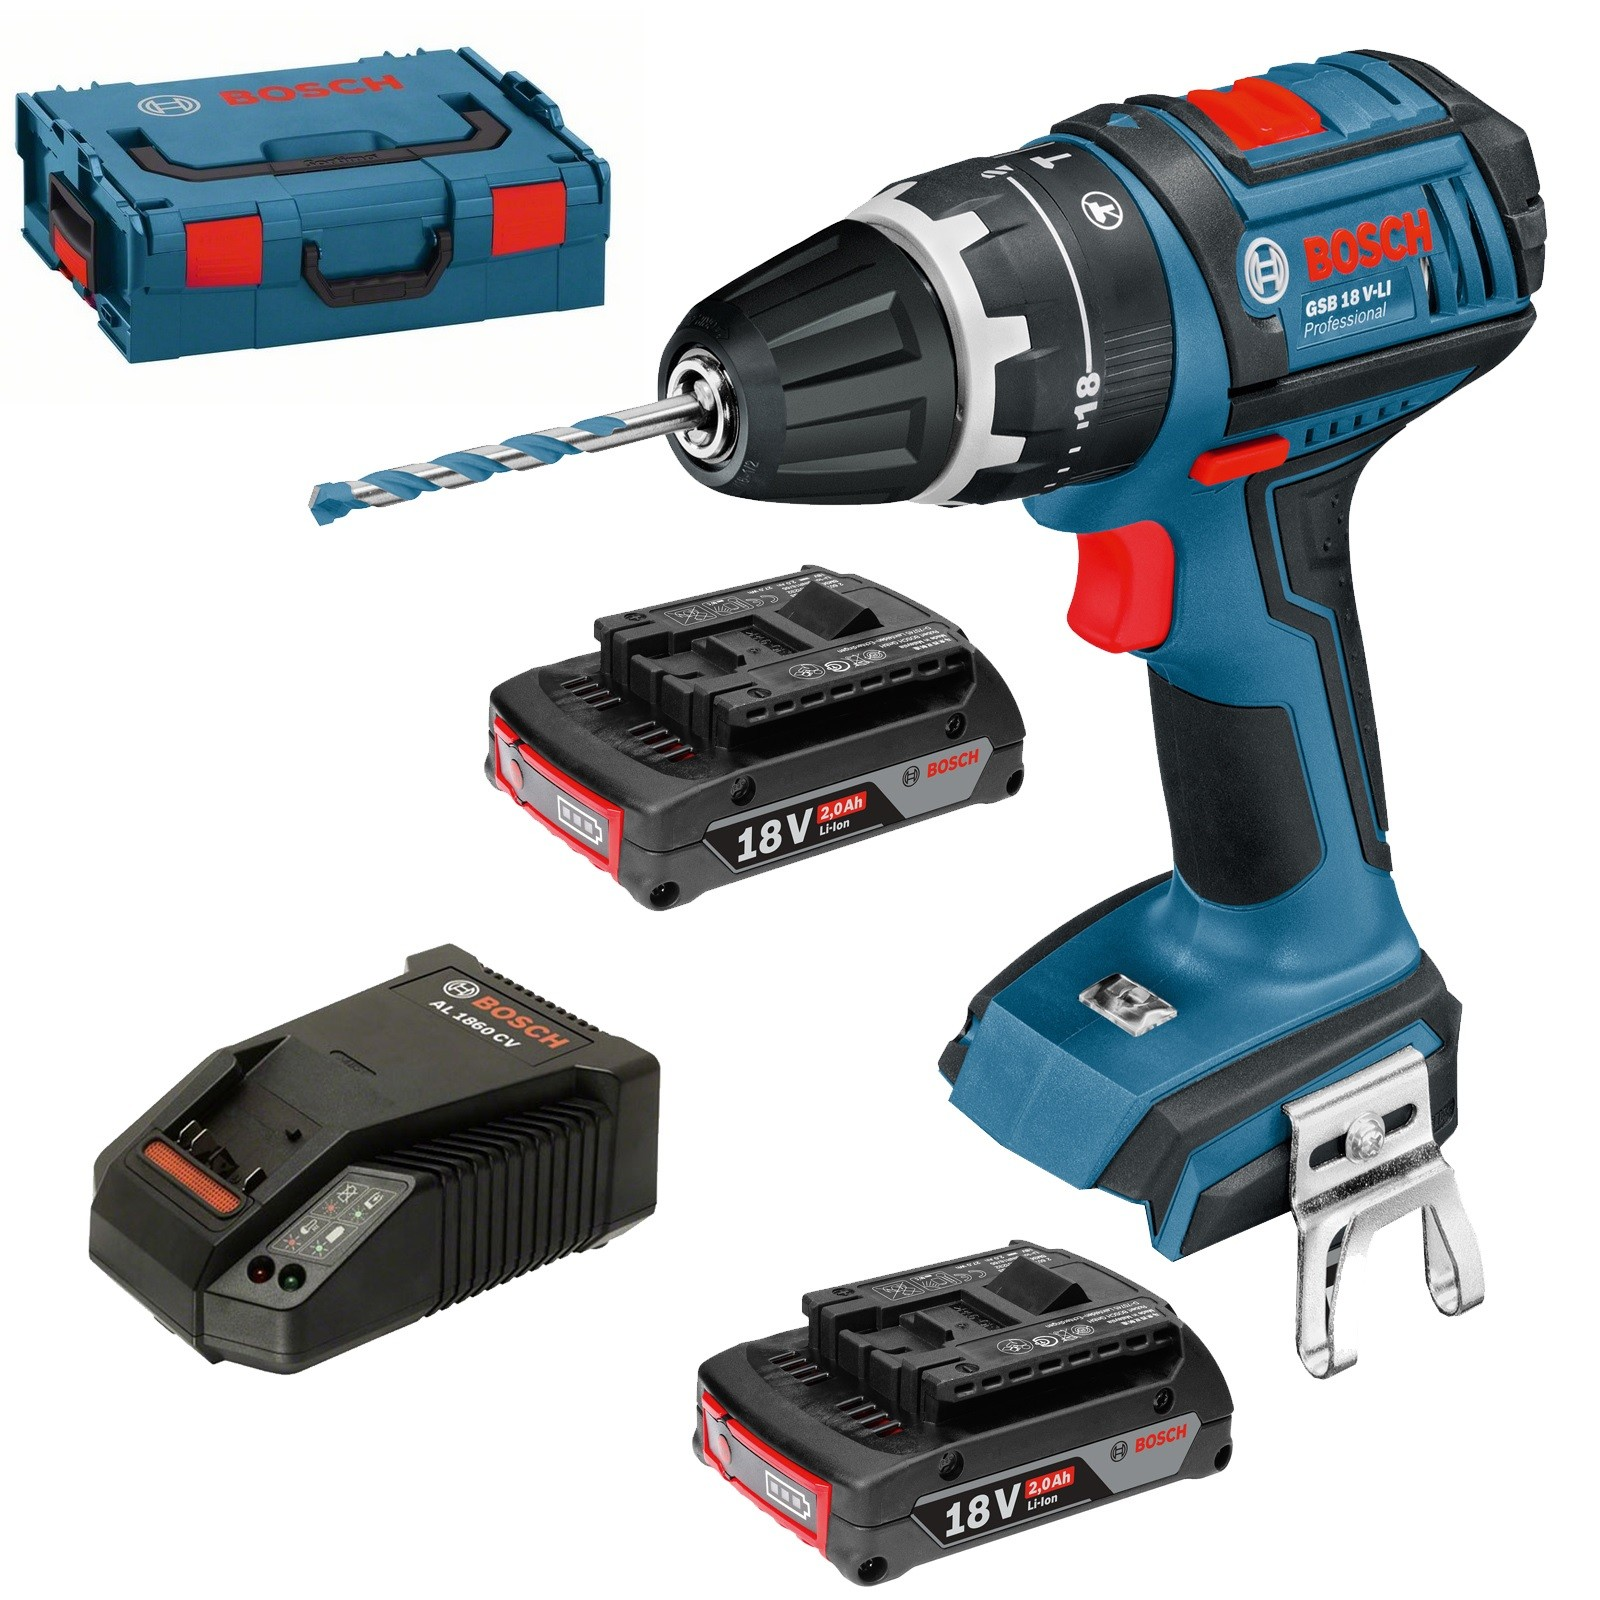 Bosch GSB 18 V-LI Combi Drill Dynamic Series inc 2x 2.0Ah Batt in L-Boxx